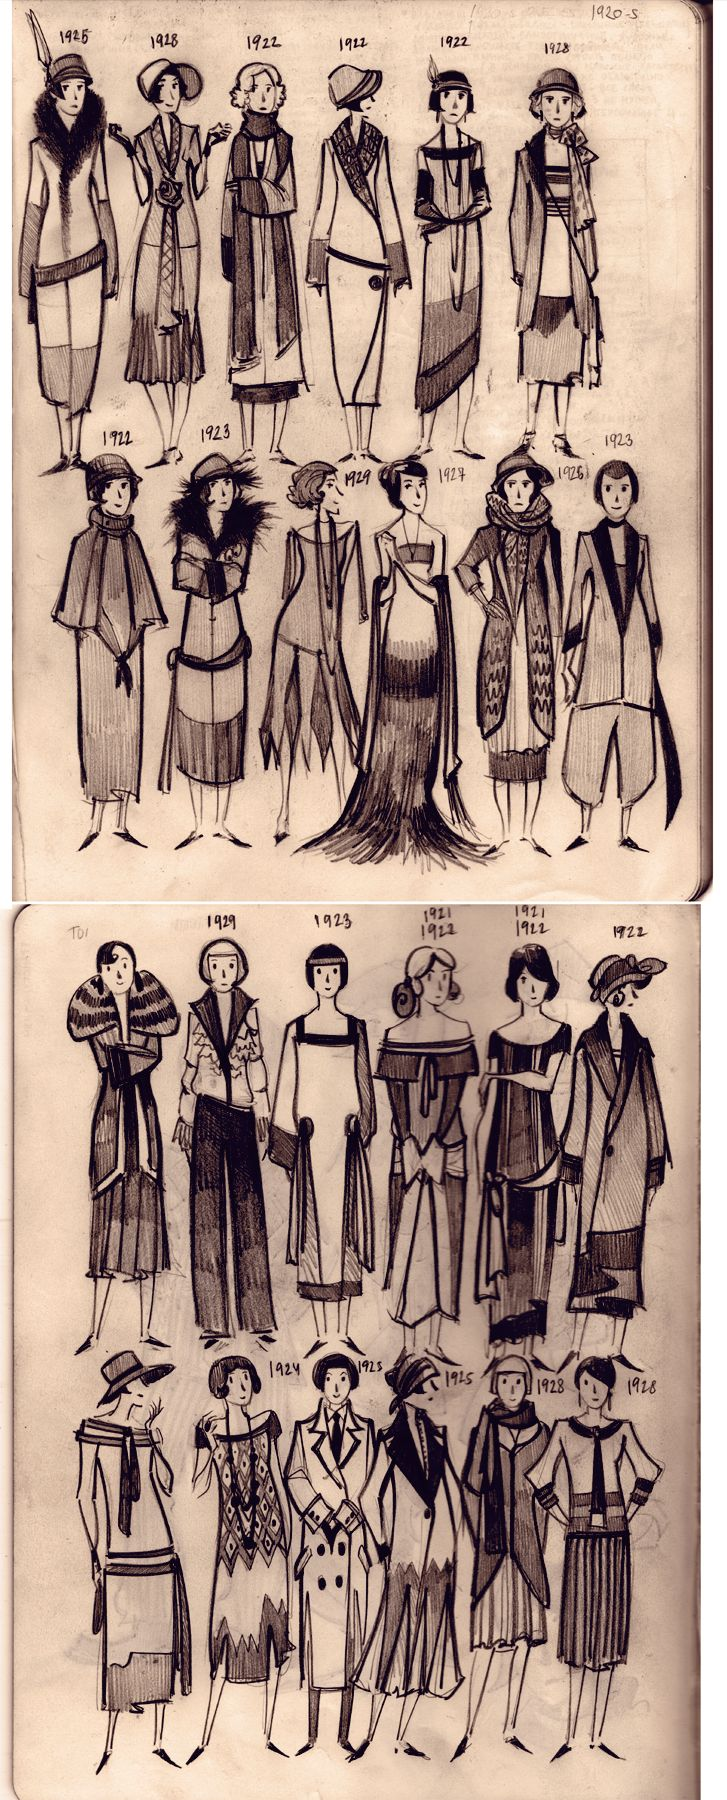 1920's women's fashion; 1923, waist lines began to drop to between the natural waist and the hip; 1924 waistlines drop to the hip; 1928 hem lines start to rise to the knee